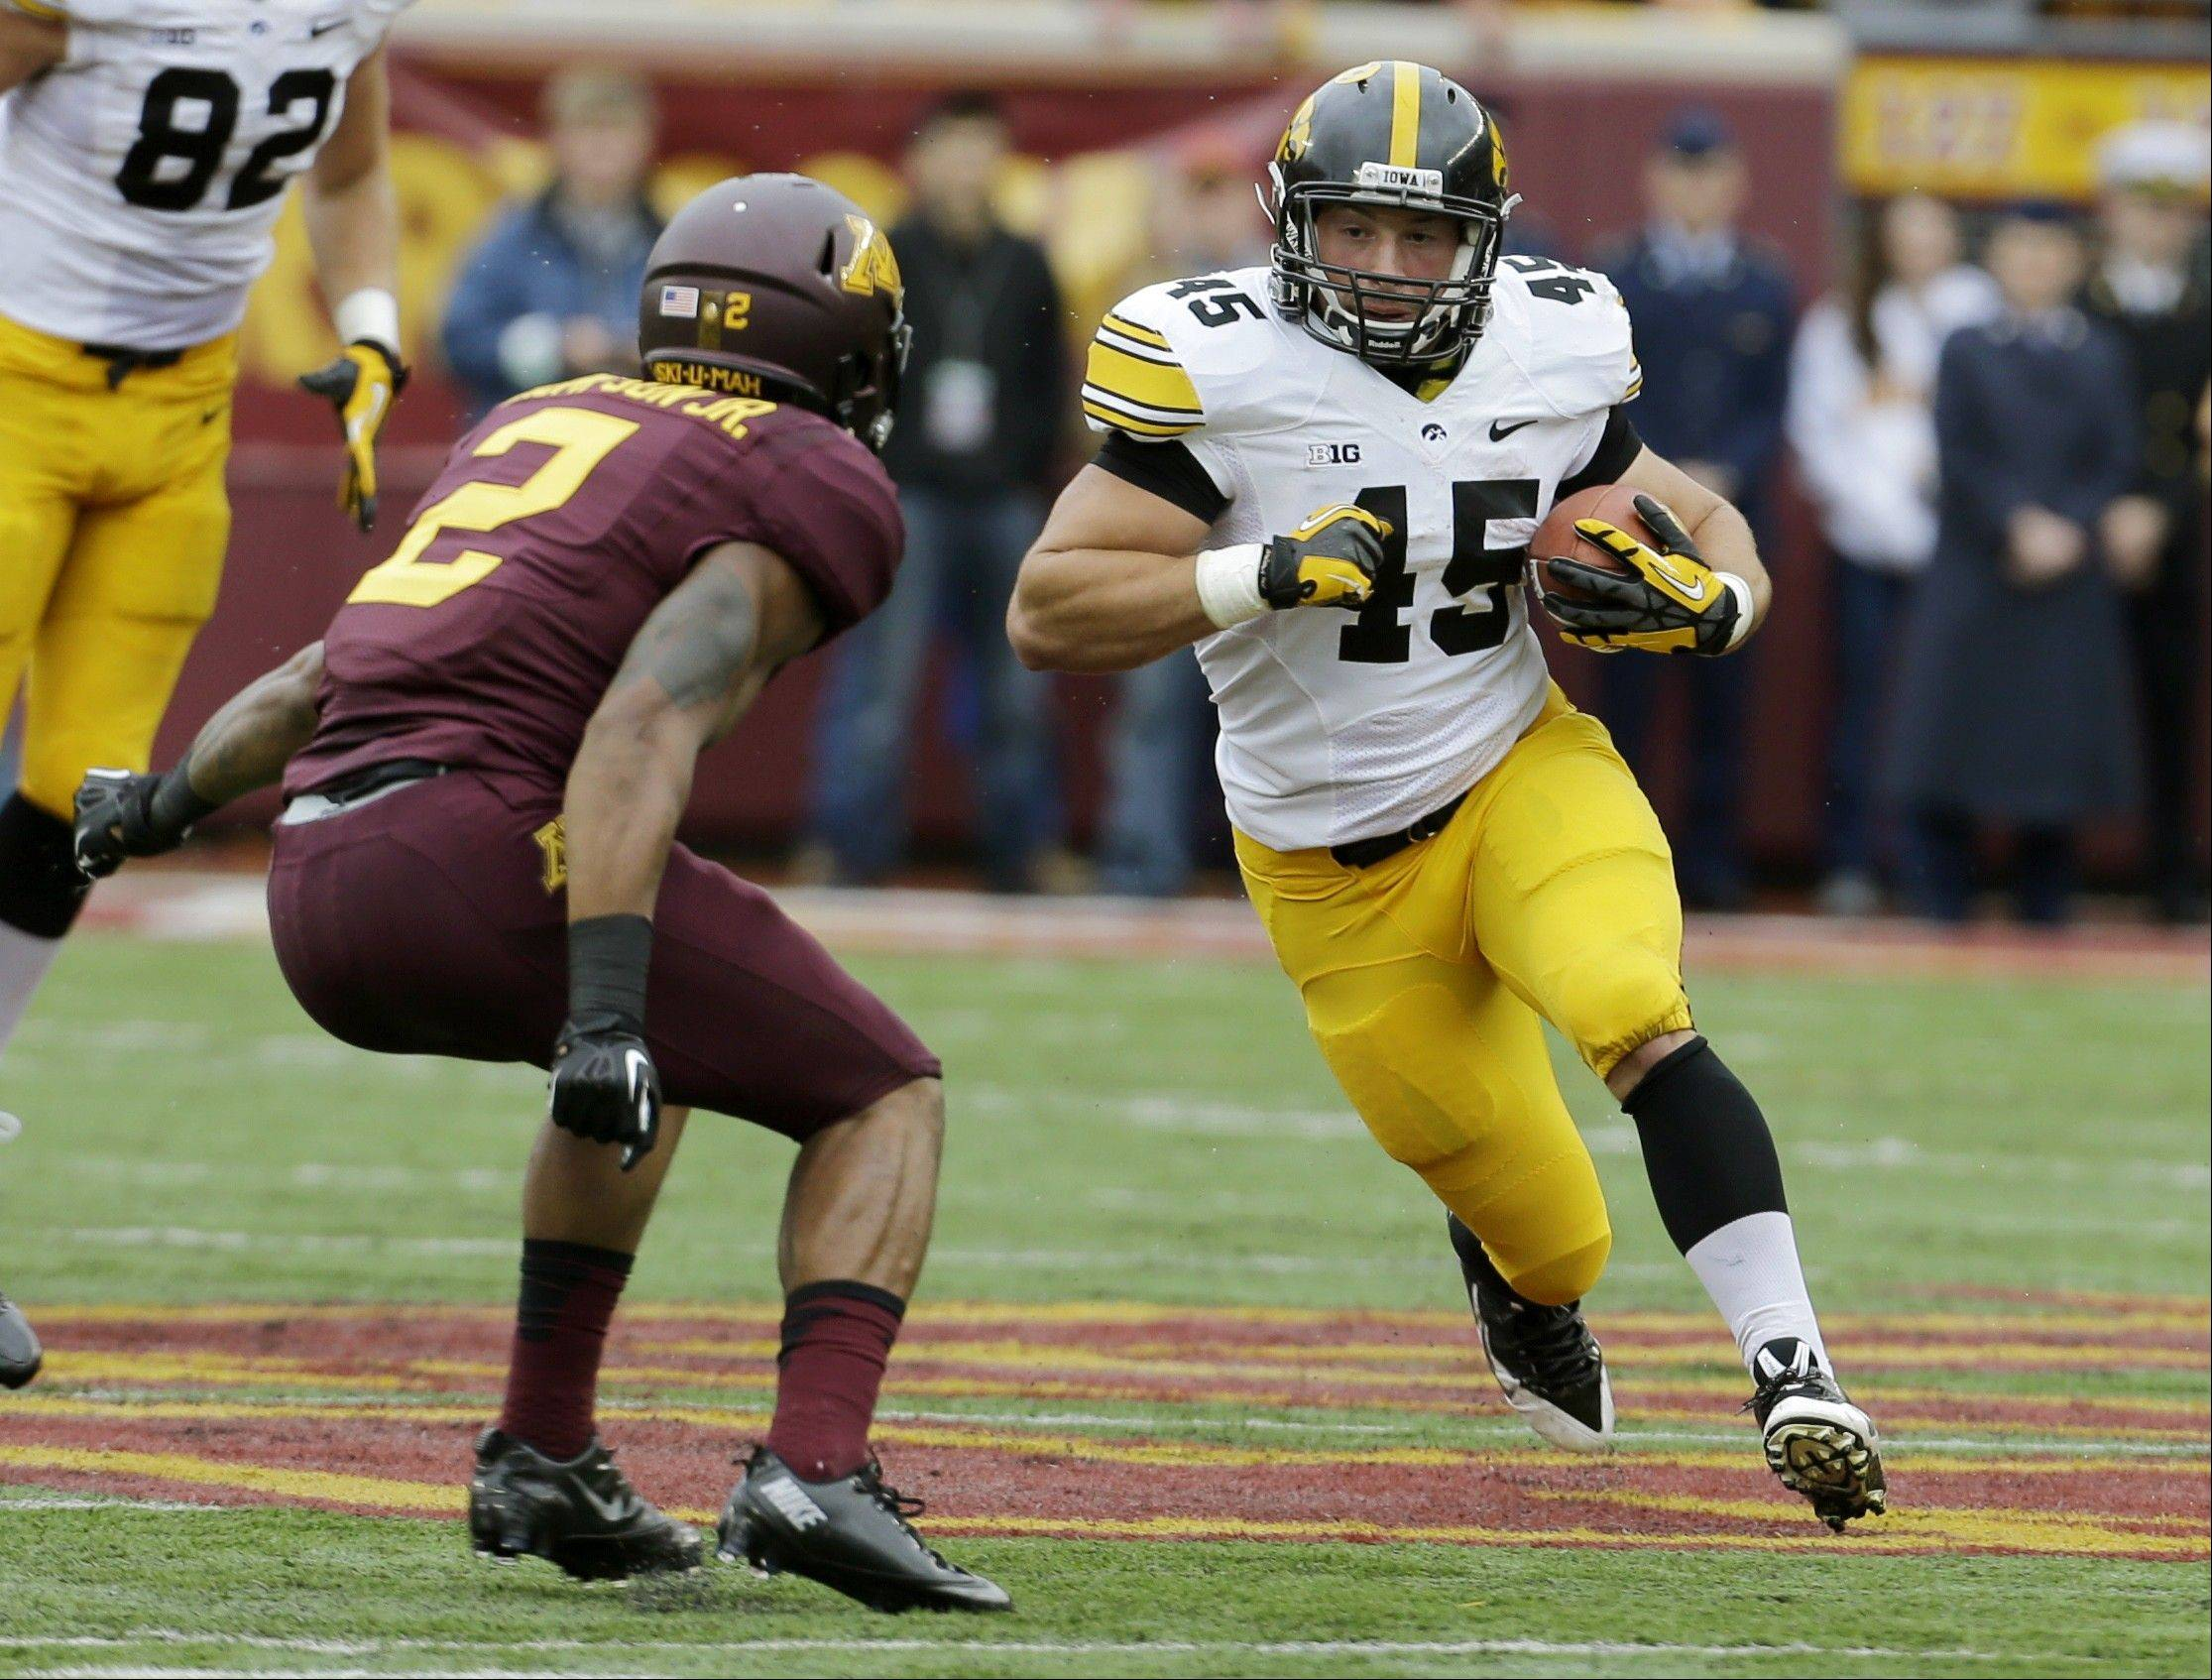 Iowa Hawkeyes fullback Mark Weisman, a Stevenson grad, carries the ball during the first quarter of Saturday�s game against Minnesota in Minneapolis.